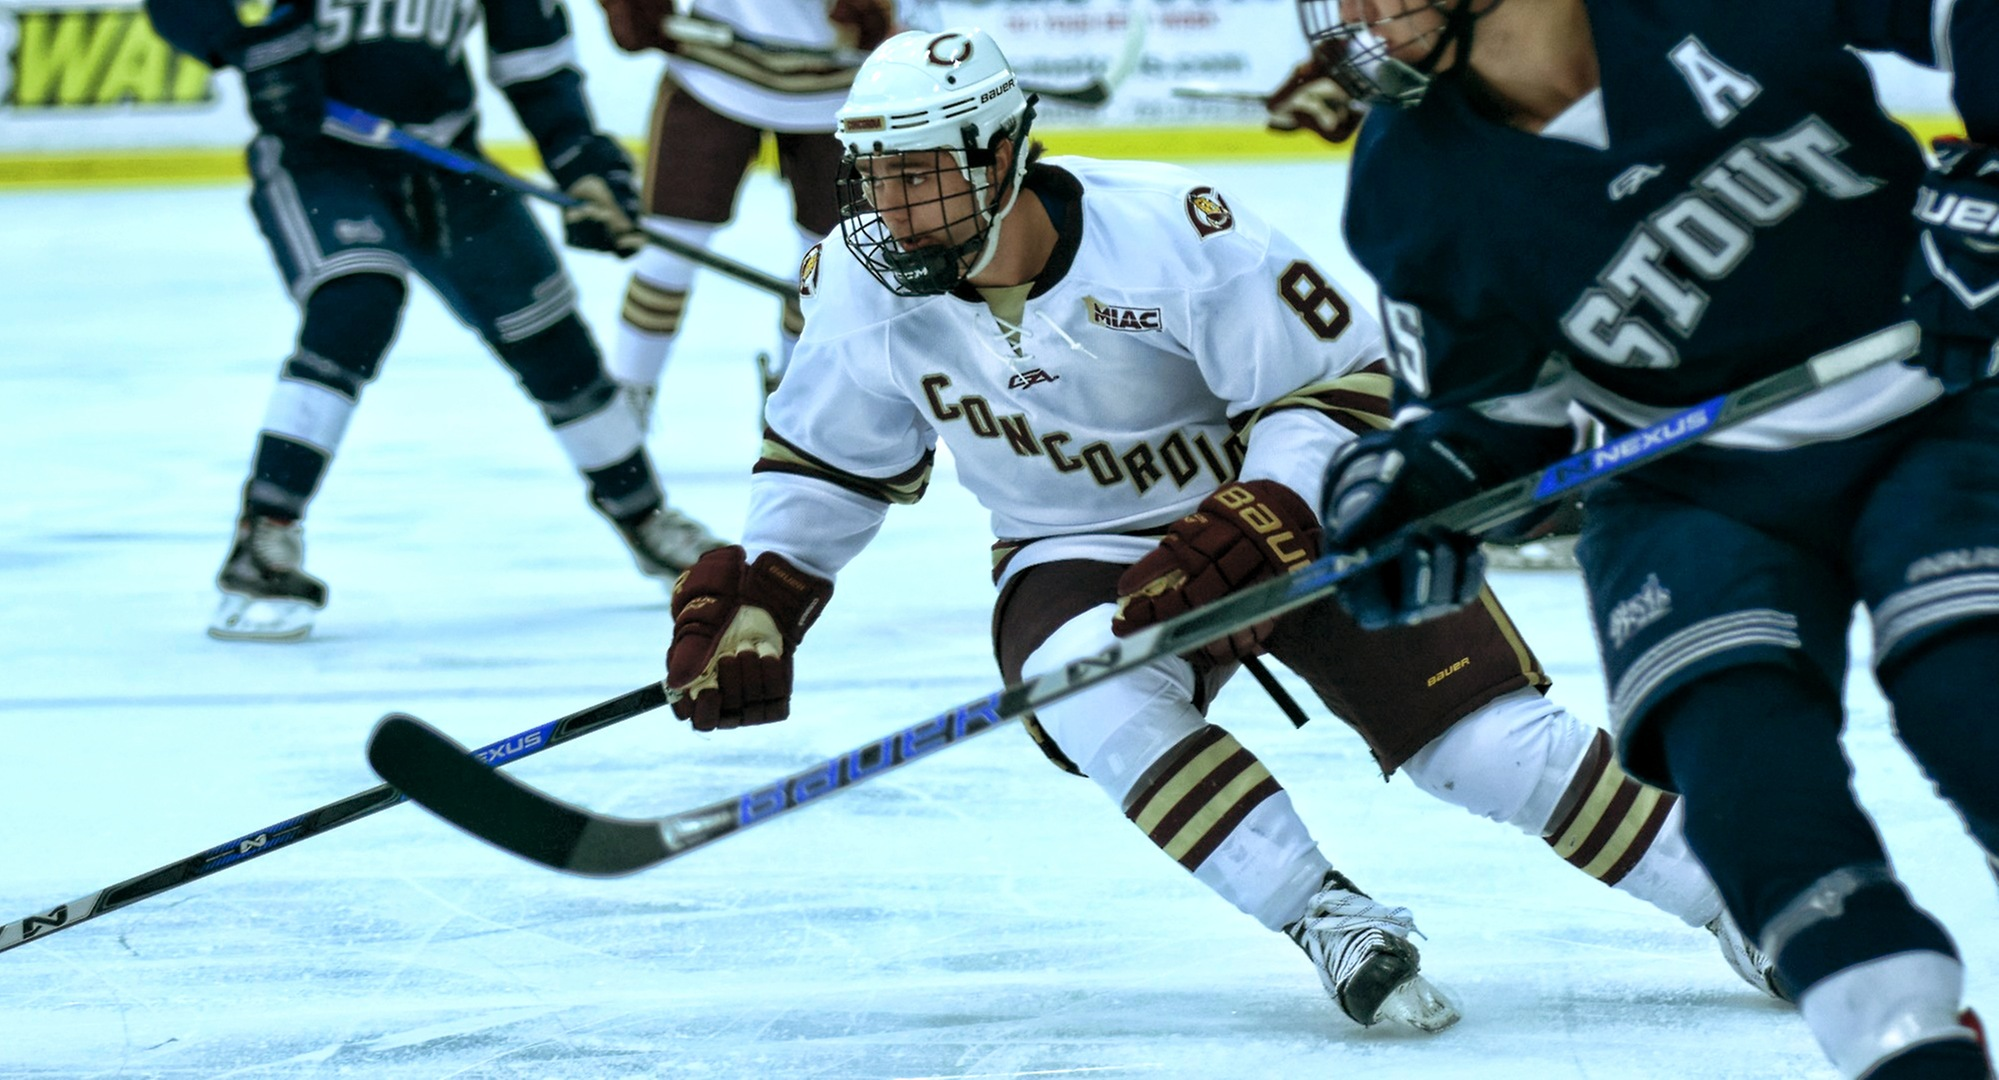 Junior Aaron Herdt crosses the blue line in the Cobbers' game with Wis.-Stout. He scored both of the goals for CC.